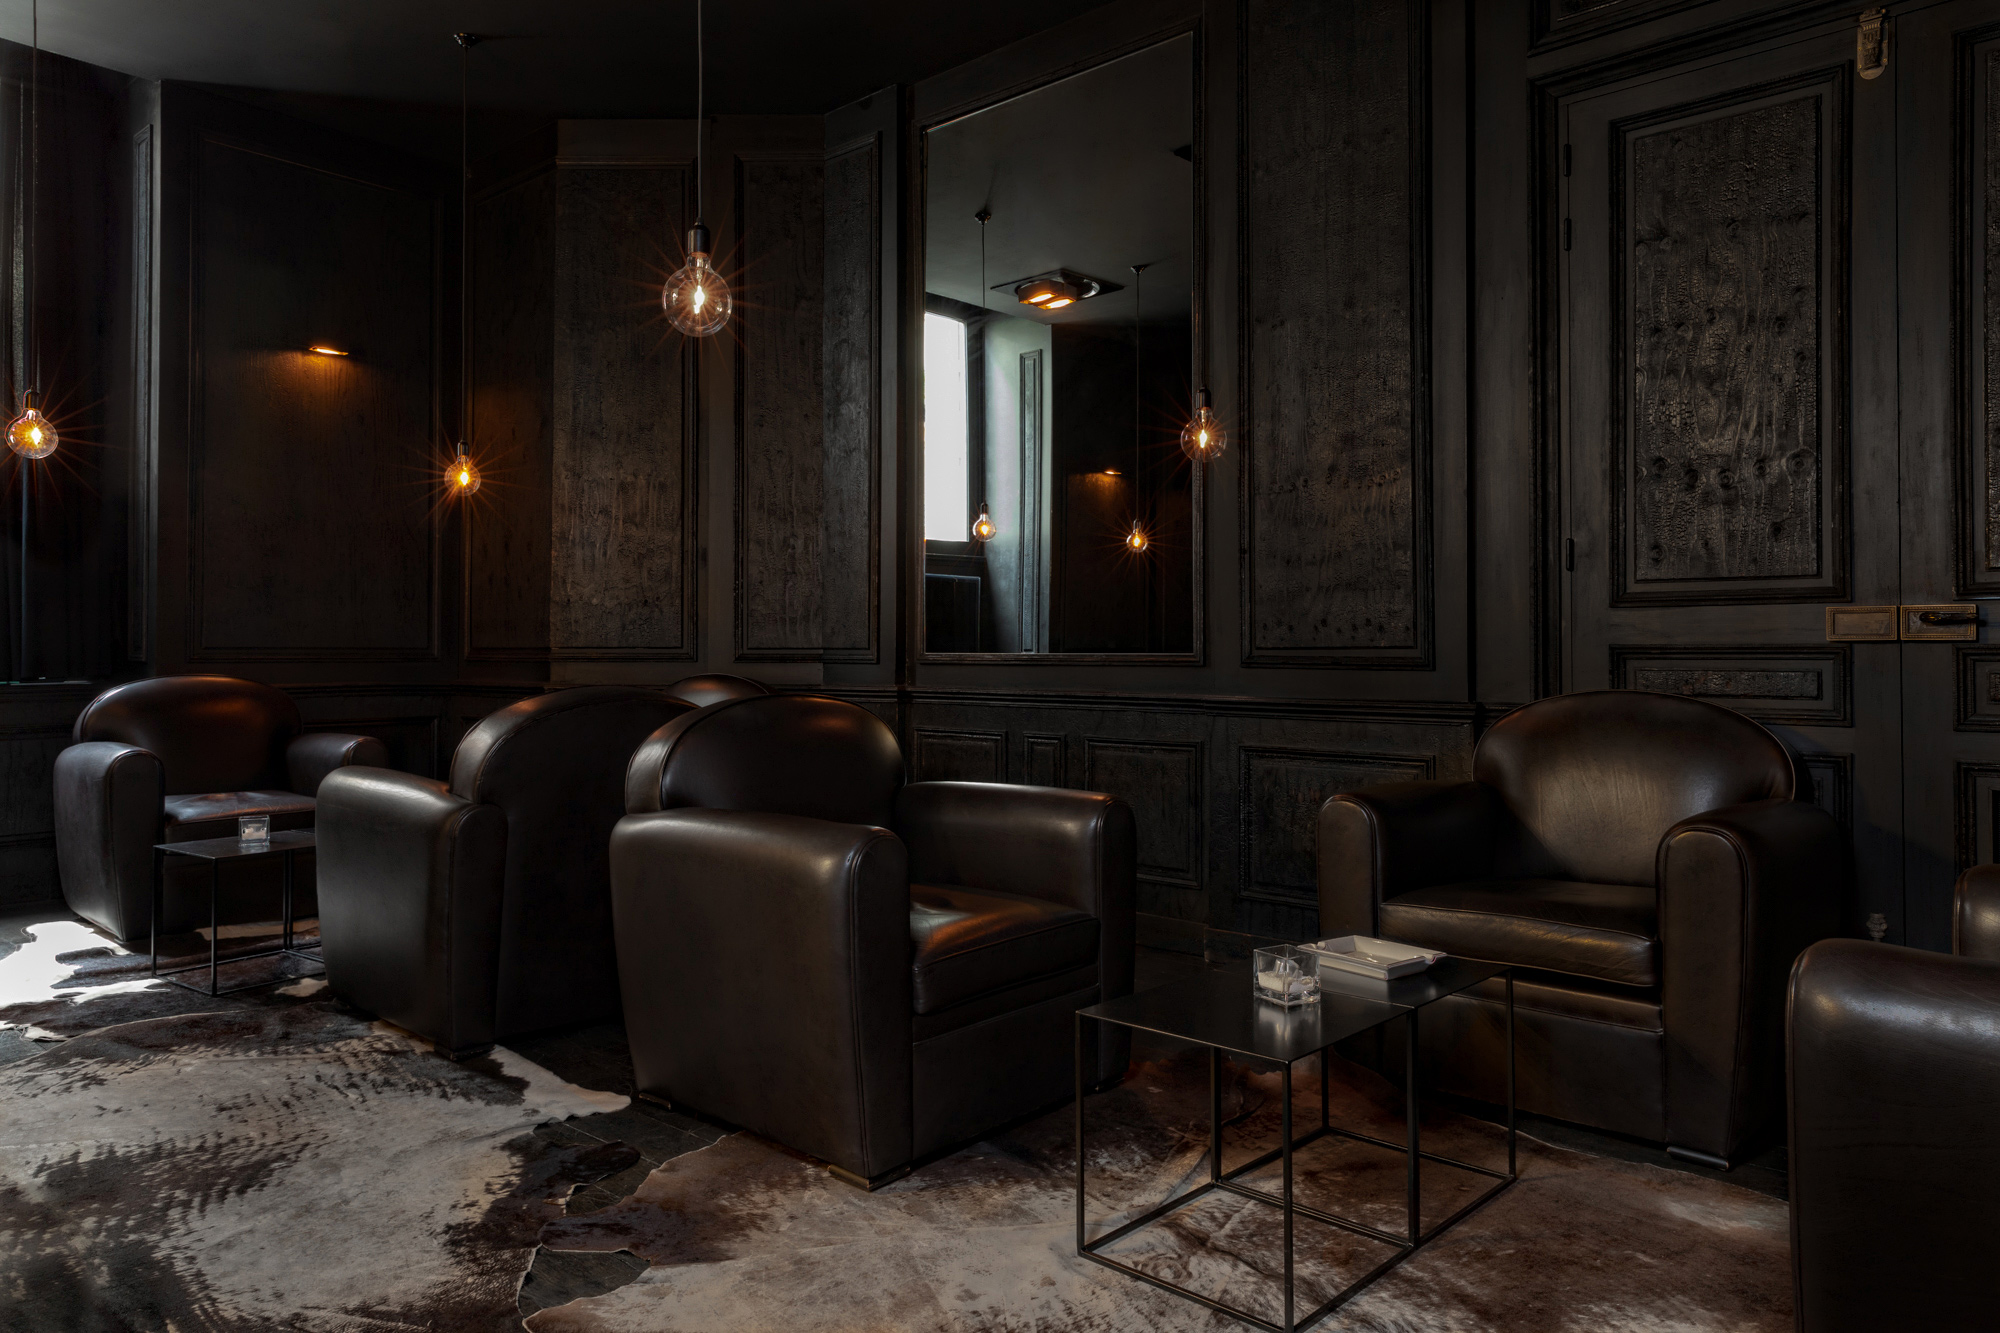 chill room in a hotel: dark brown walls; brown leather armchairs, coffee tables